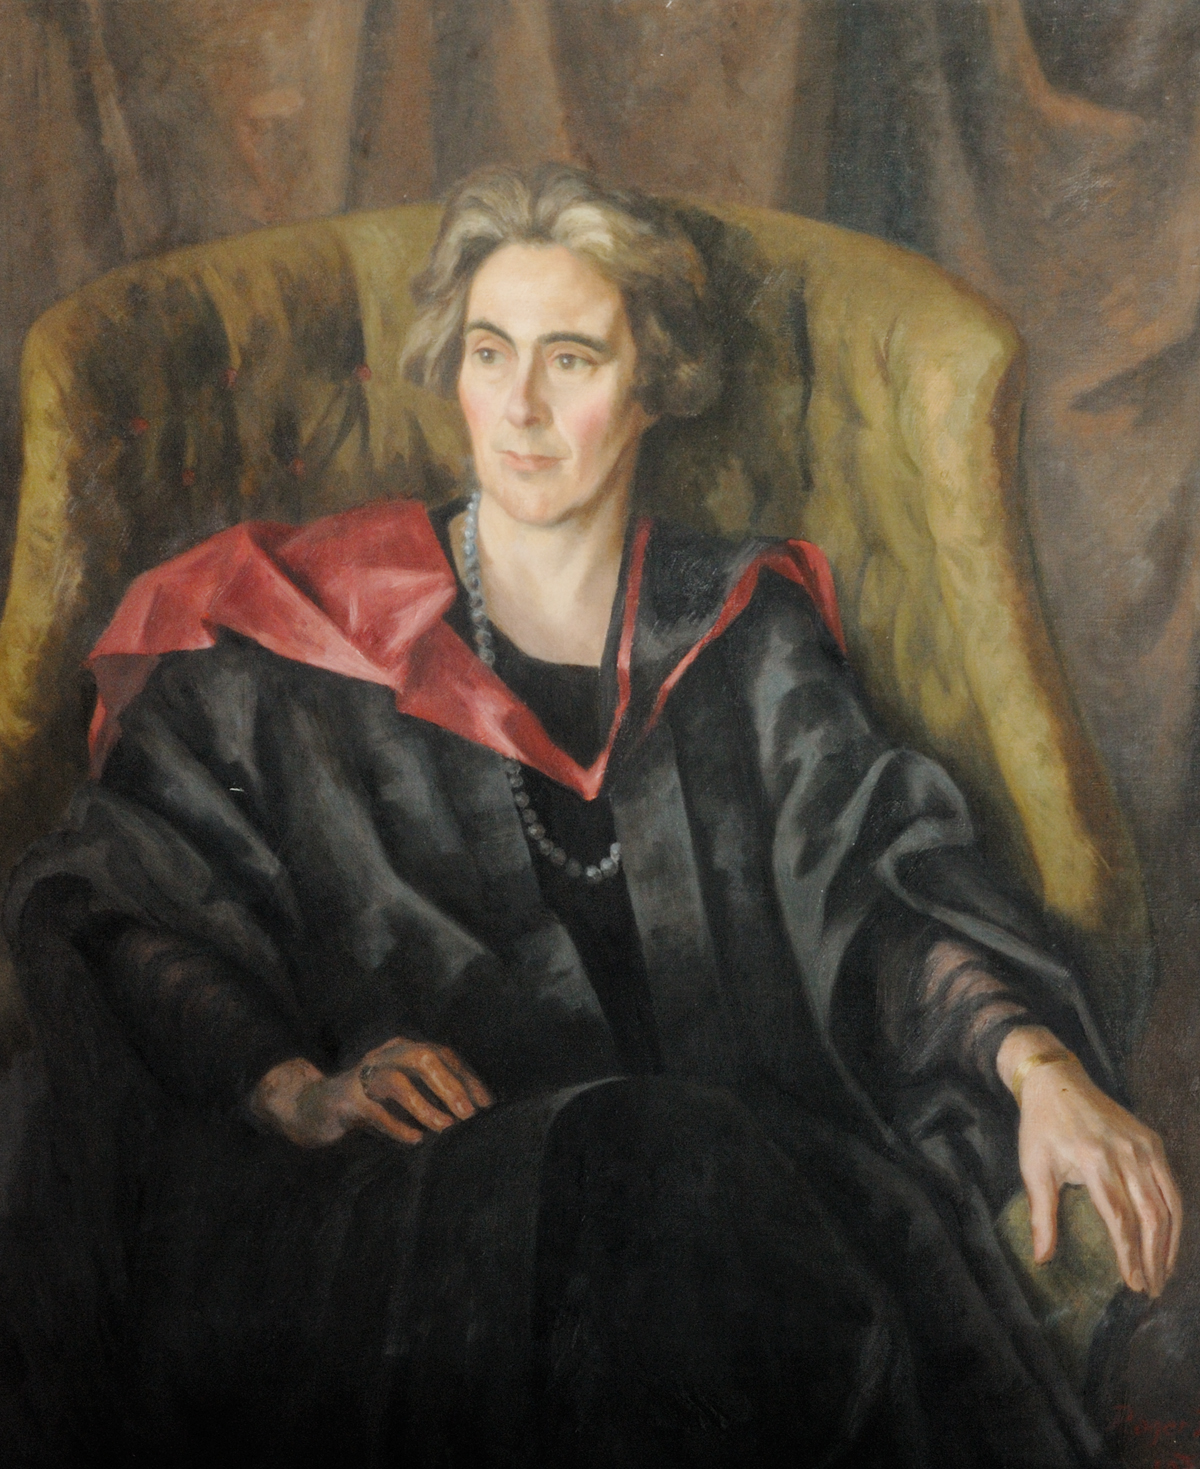 Margery Fry by her brother Roger Fry (died over 70 years ago).jpg